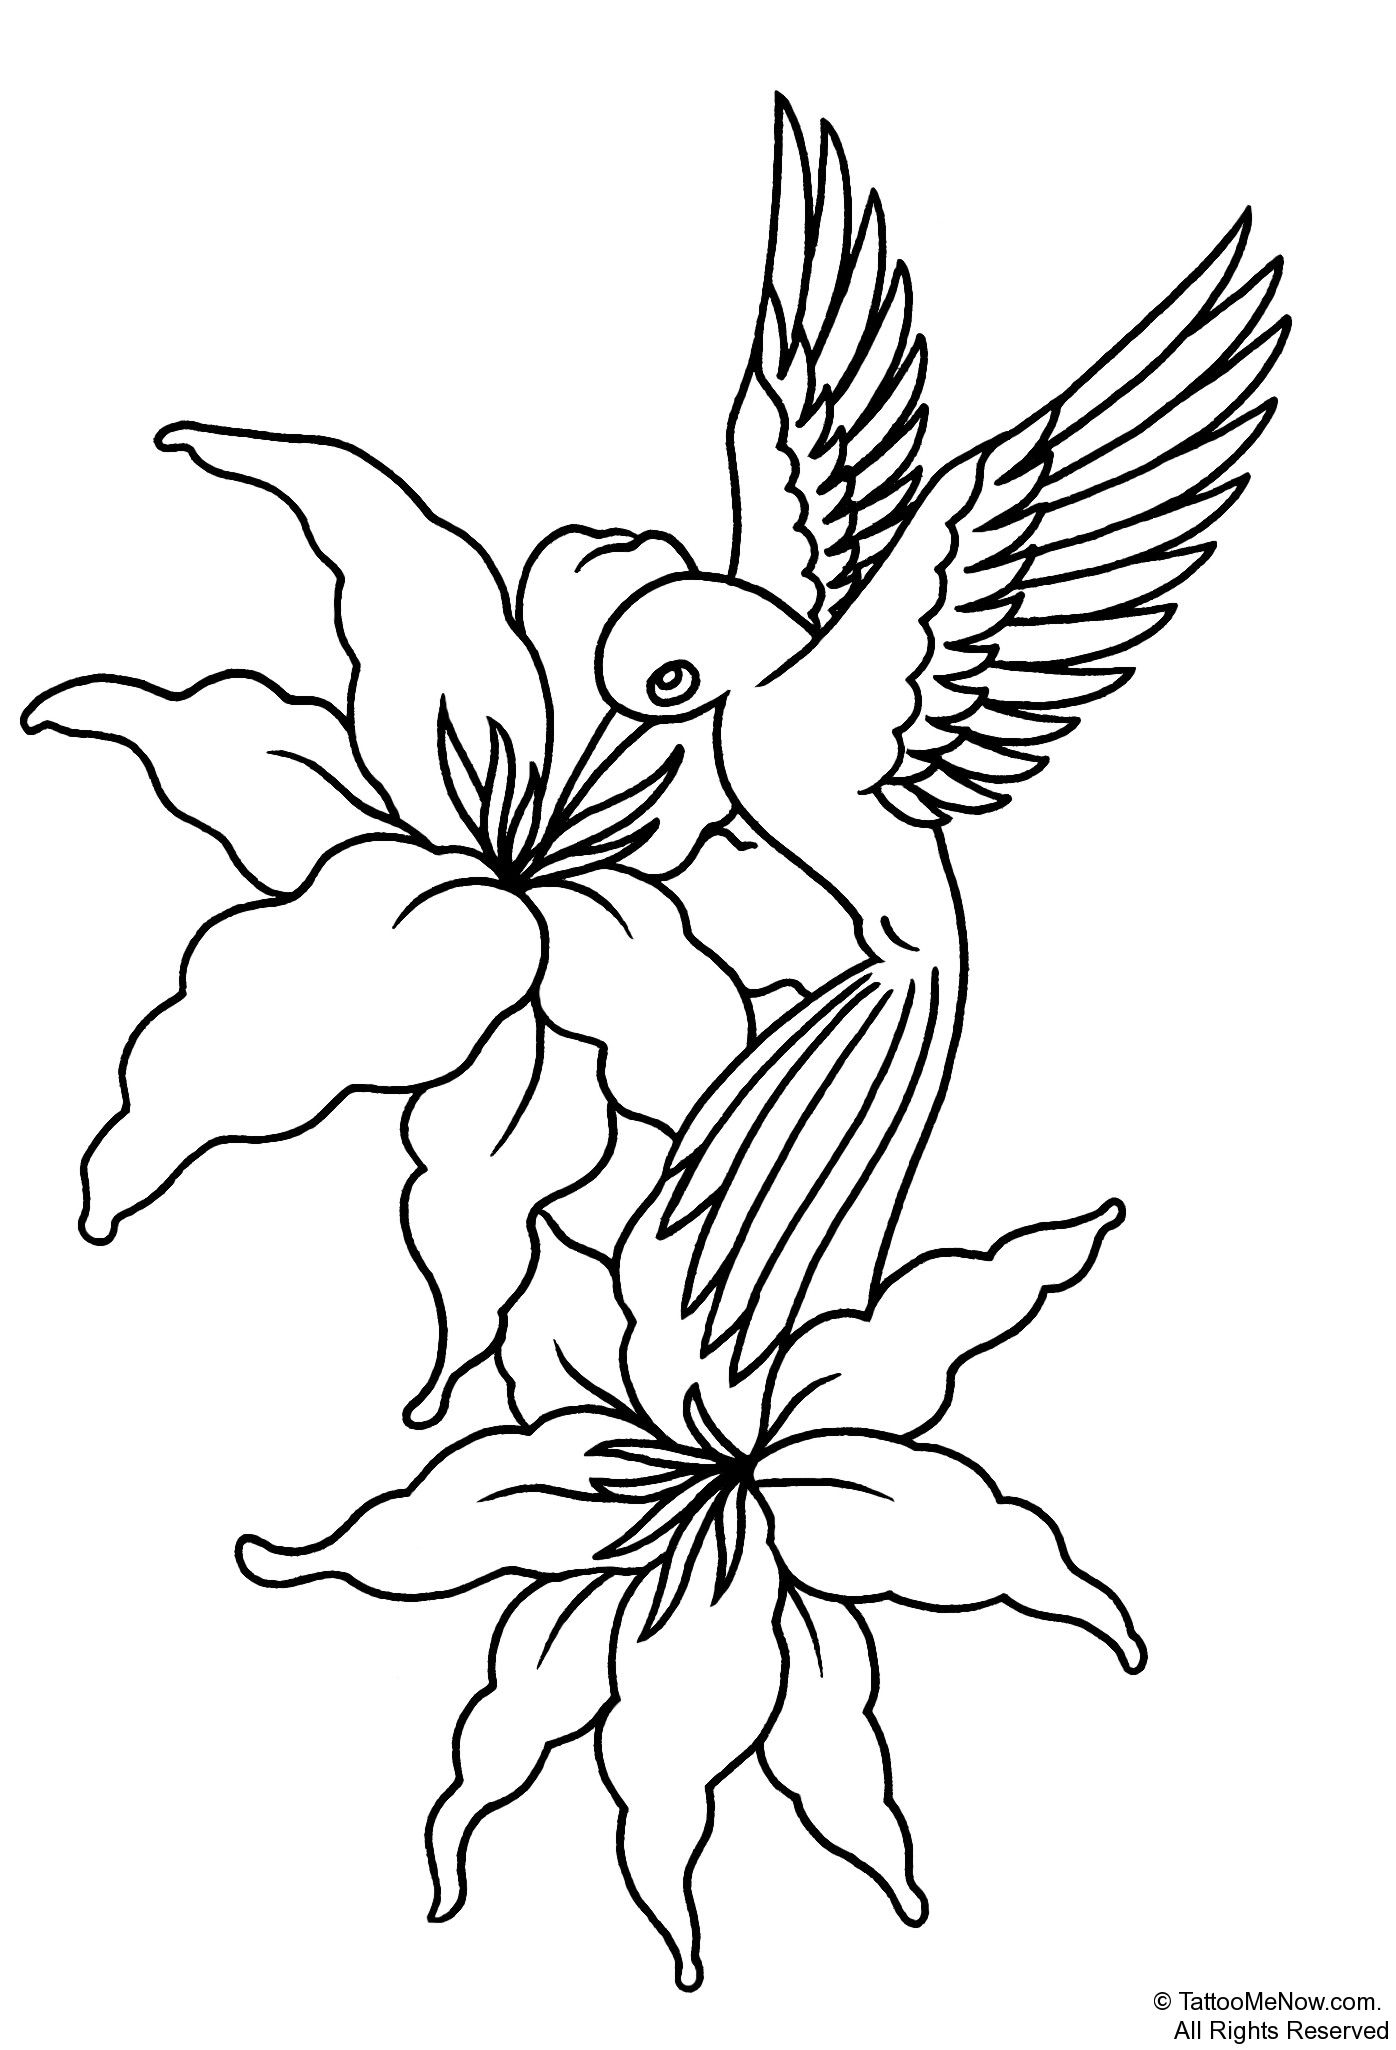 Free Printable Tattoo Stencils | Your Free Tattoo Designs & Stencils - Free Tattoo Stencils Printable